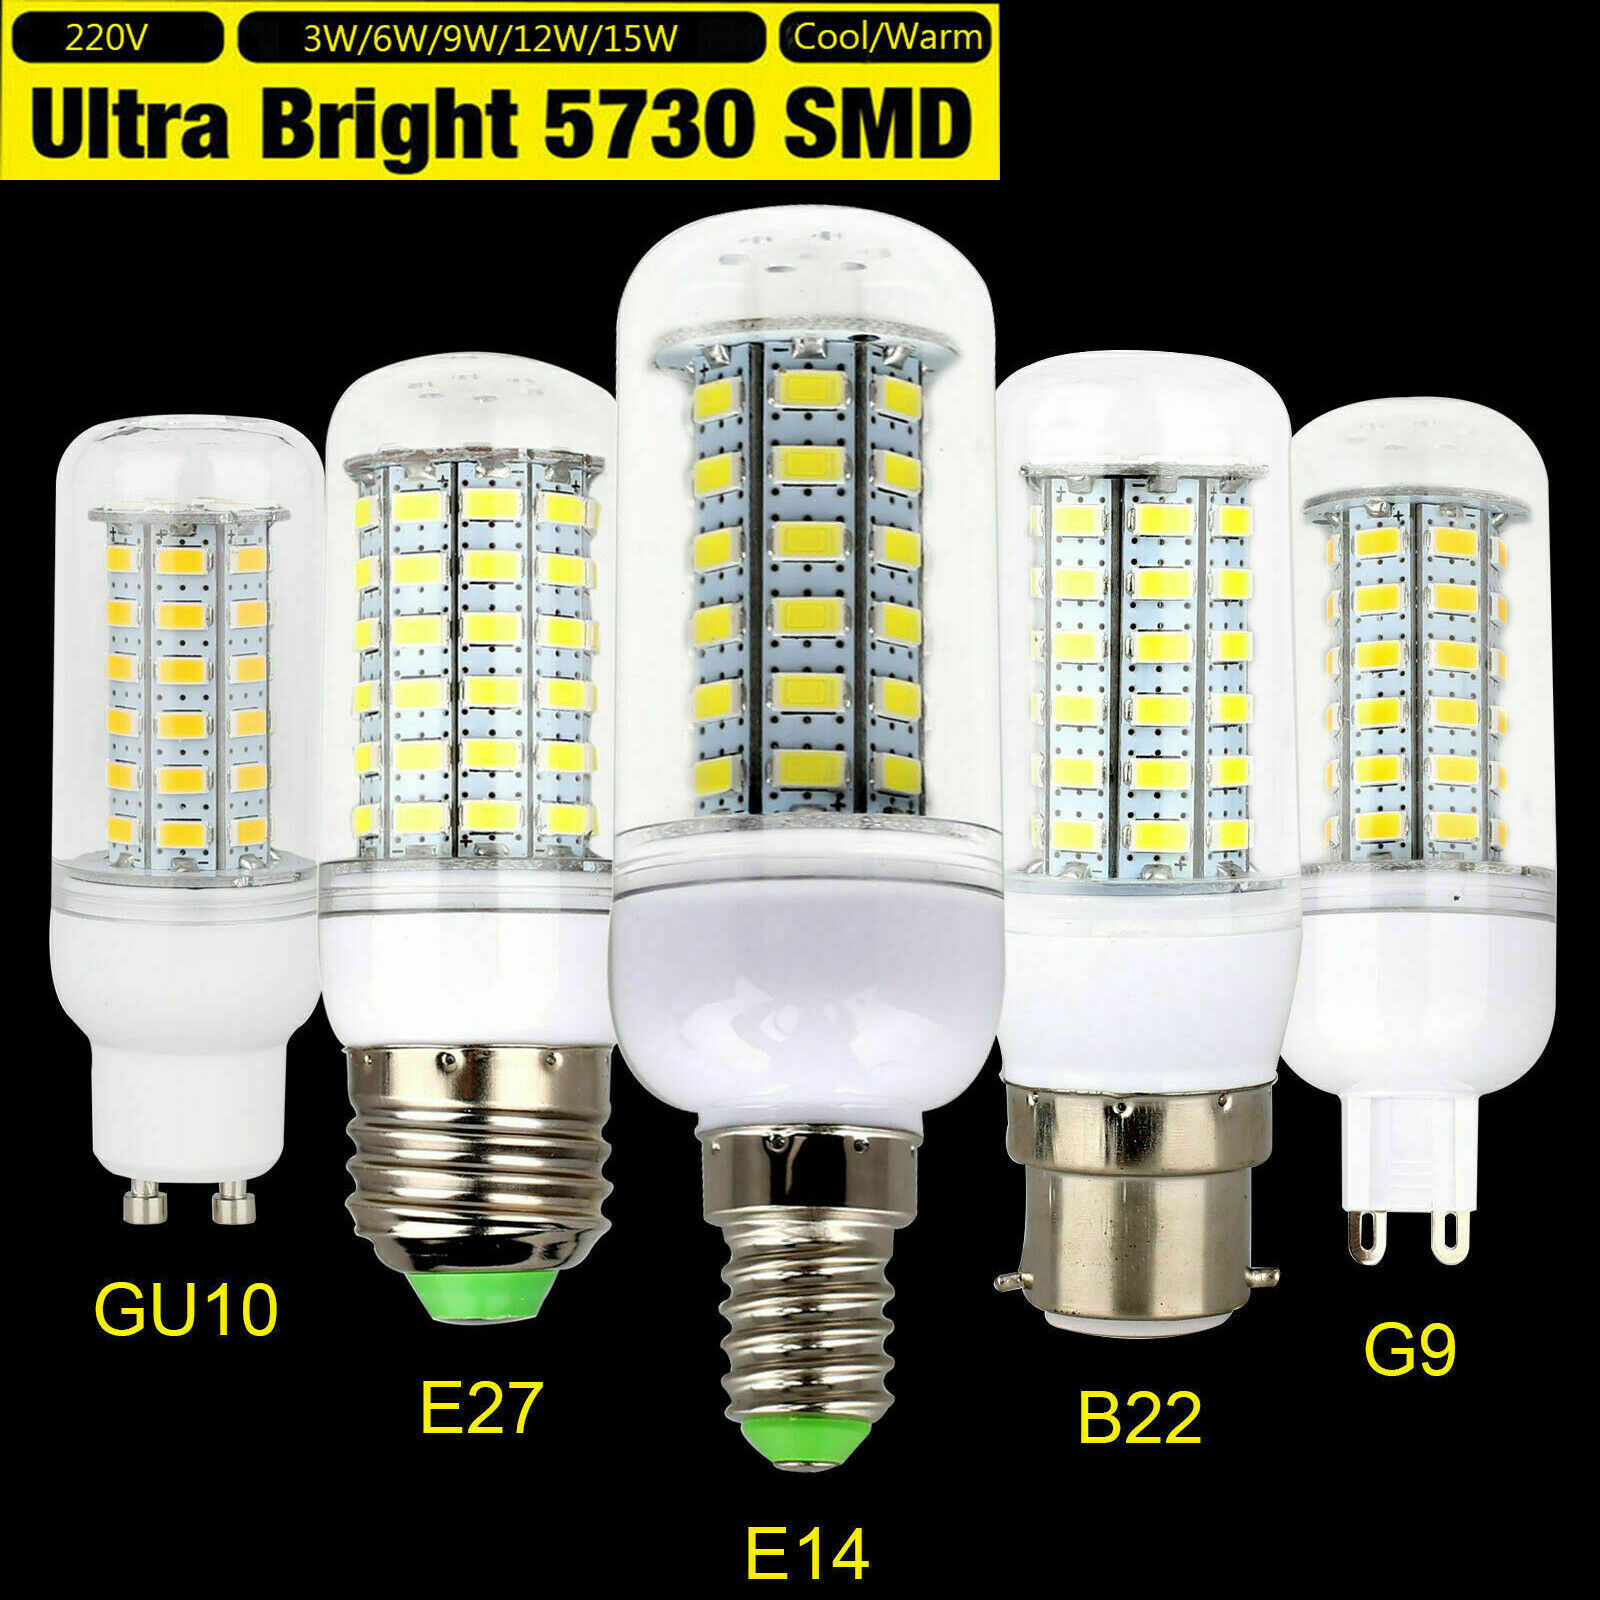 3W 6W 9W 12W 15W <font><b>LED</b></font> Corn Light Bulbs E14 E27 B22 <font><b>G9</b></font> GU10 5730 SMD Bright Cool Warm White Lamp <font><b>220V</b></font> 110V for Home Office <font><b>Ampoule</b></font> image